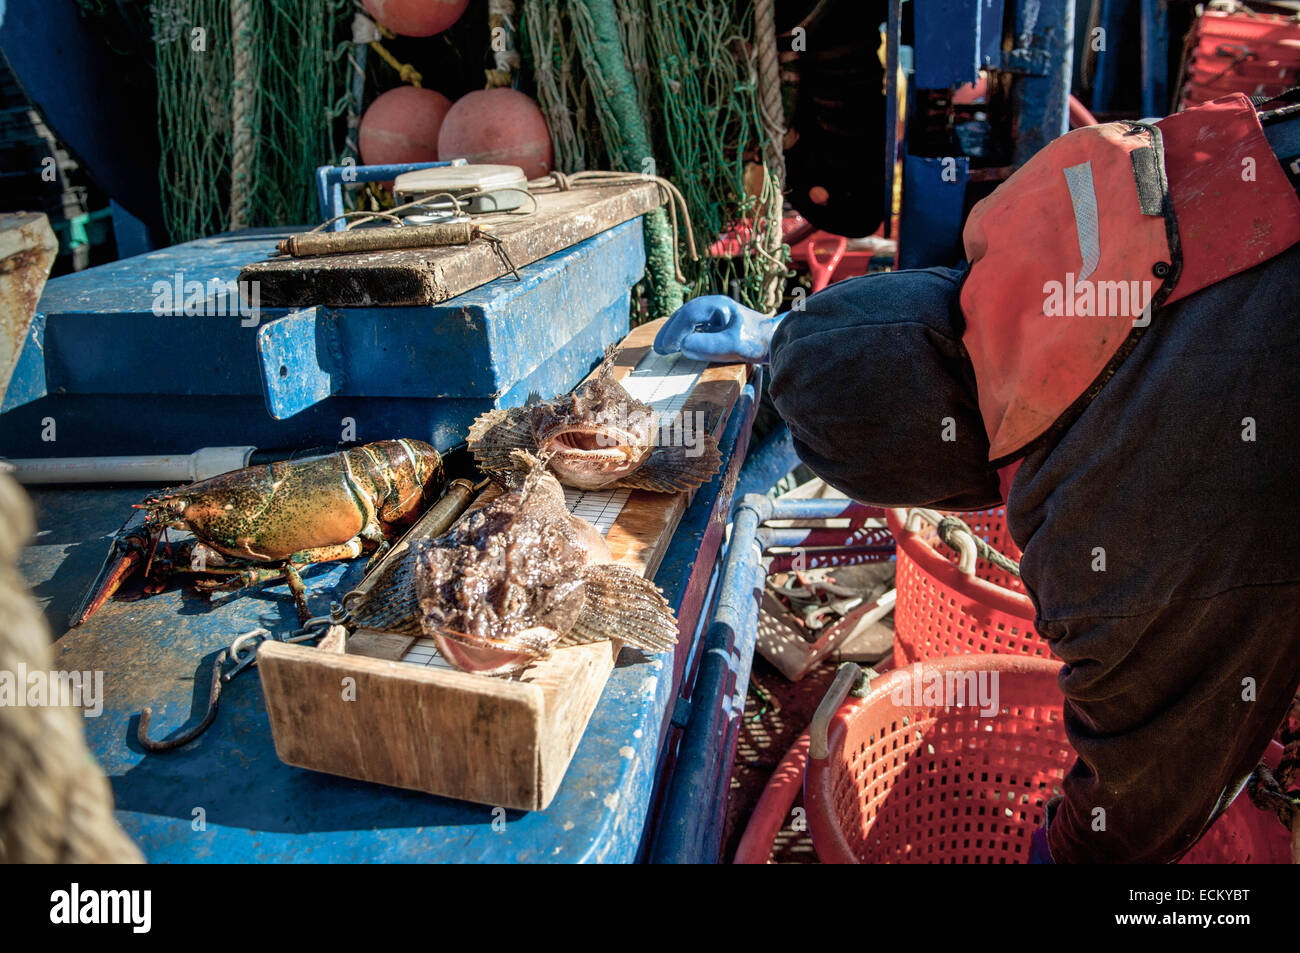 Longhorn Sculpin (Myoxocephalus octodecemspinosus) being measured by Fisheries Observer on fishing dragger. Stellwagen - Stock Image